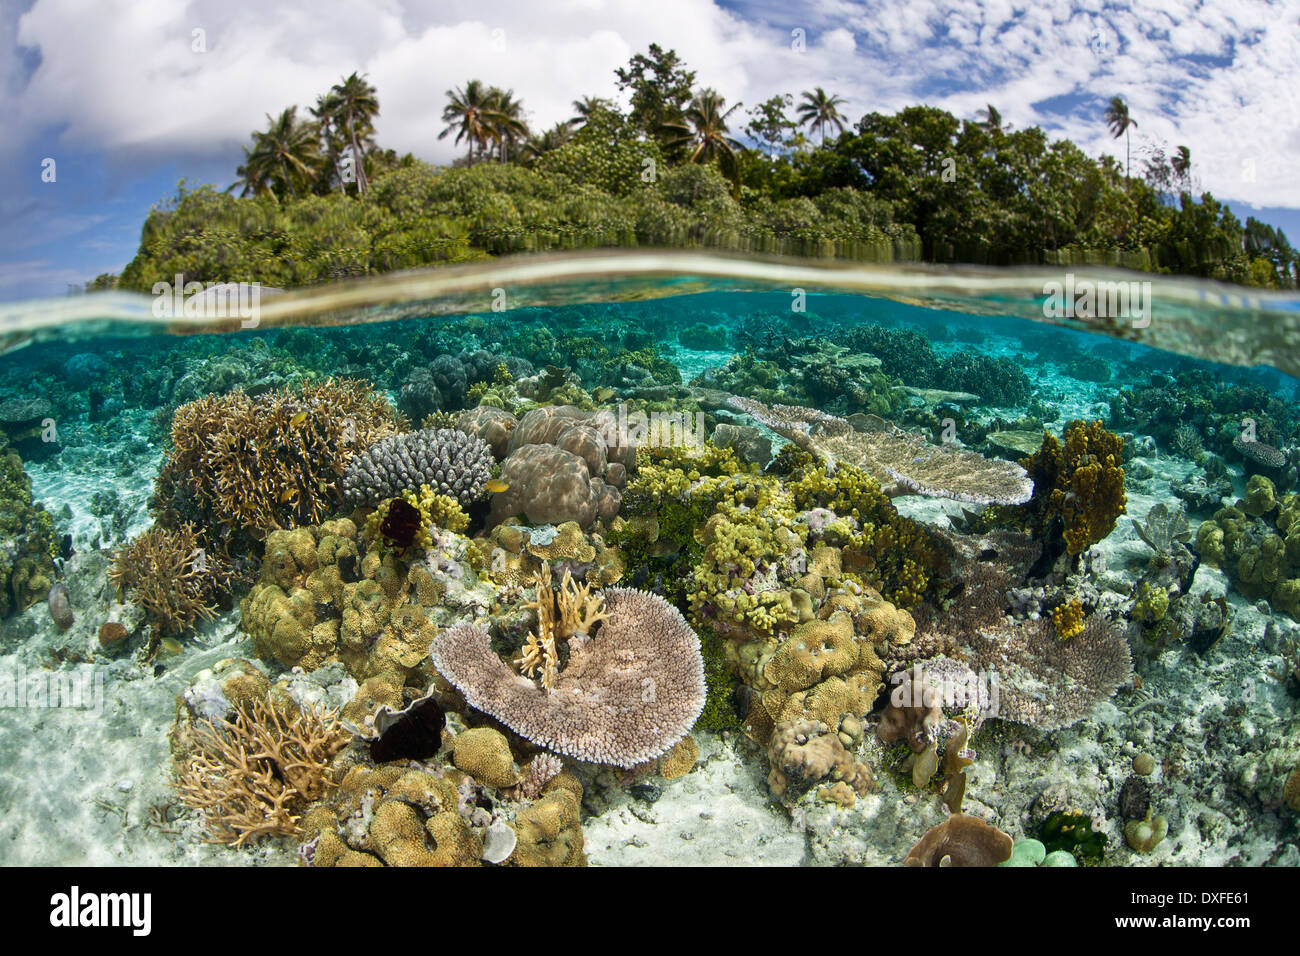 Fauna Of South Pacific Islands